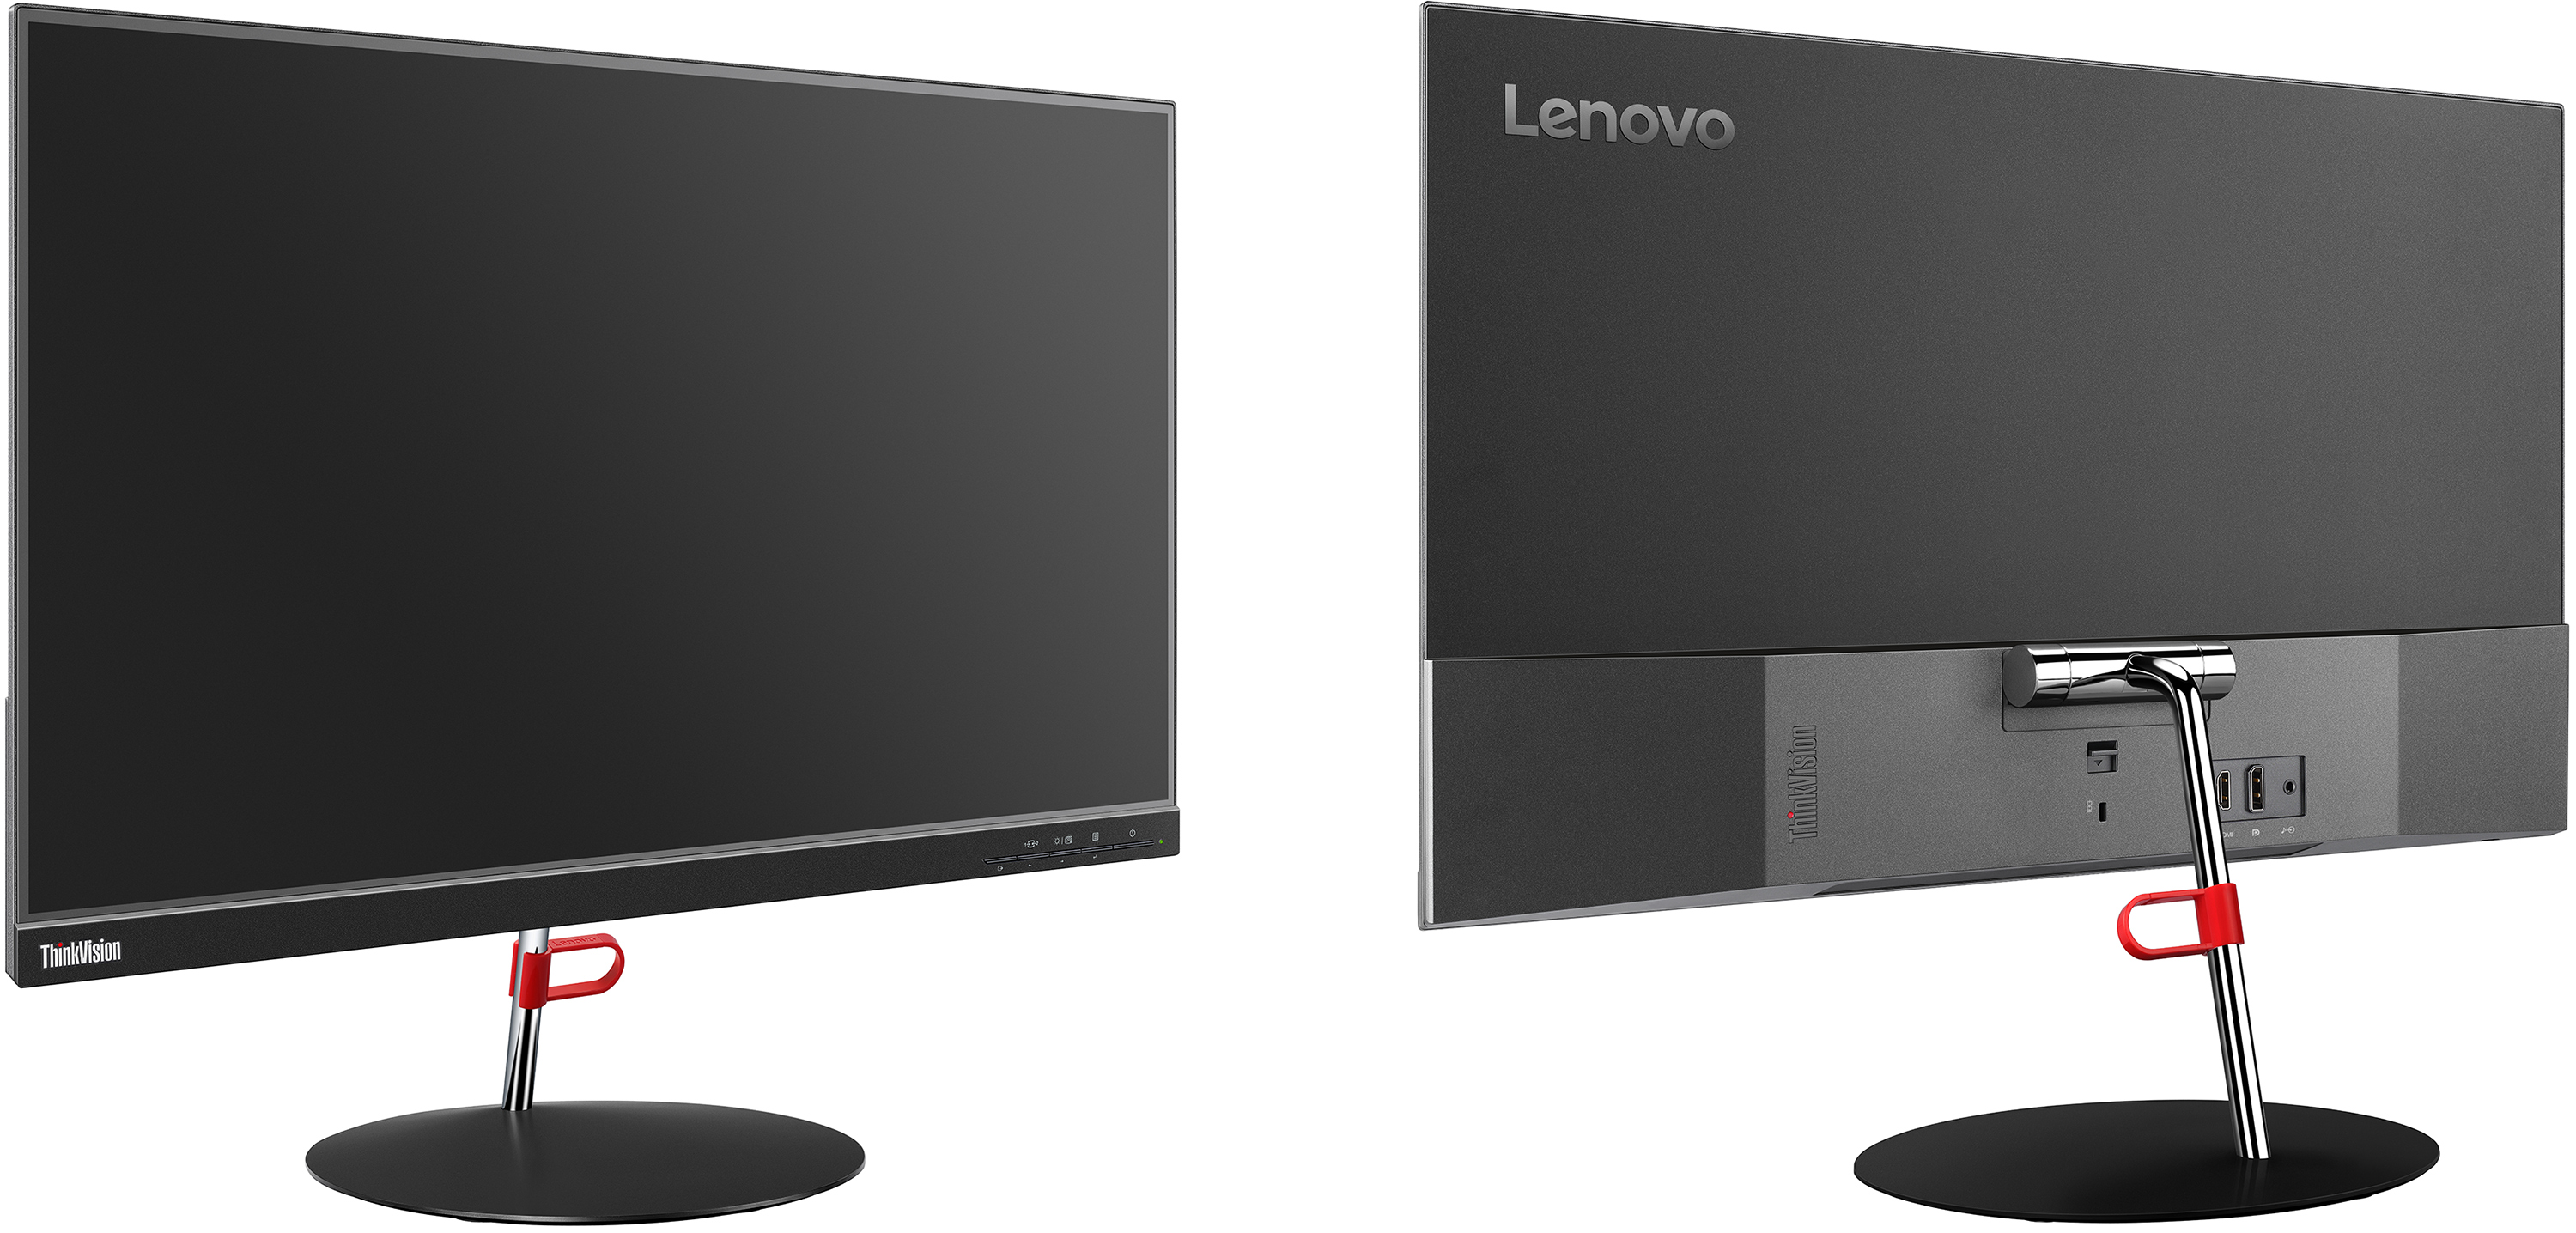 Lenovo Unveils New ThinkVision X24 LCD: 4-mm Thick, Ultra